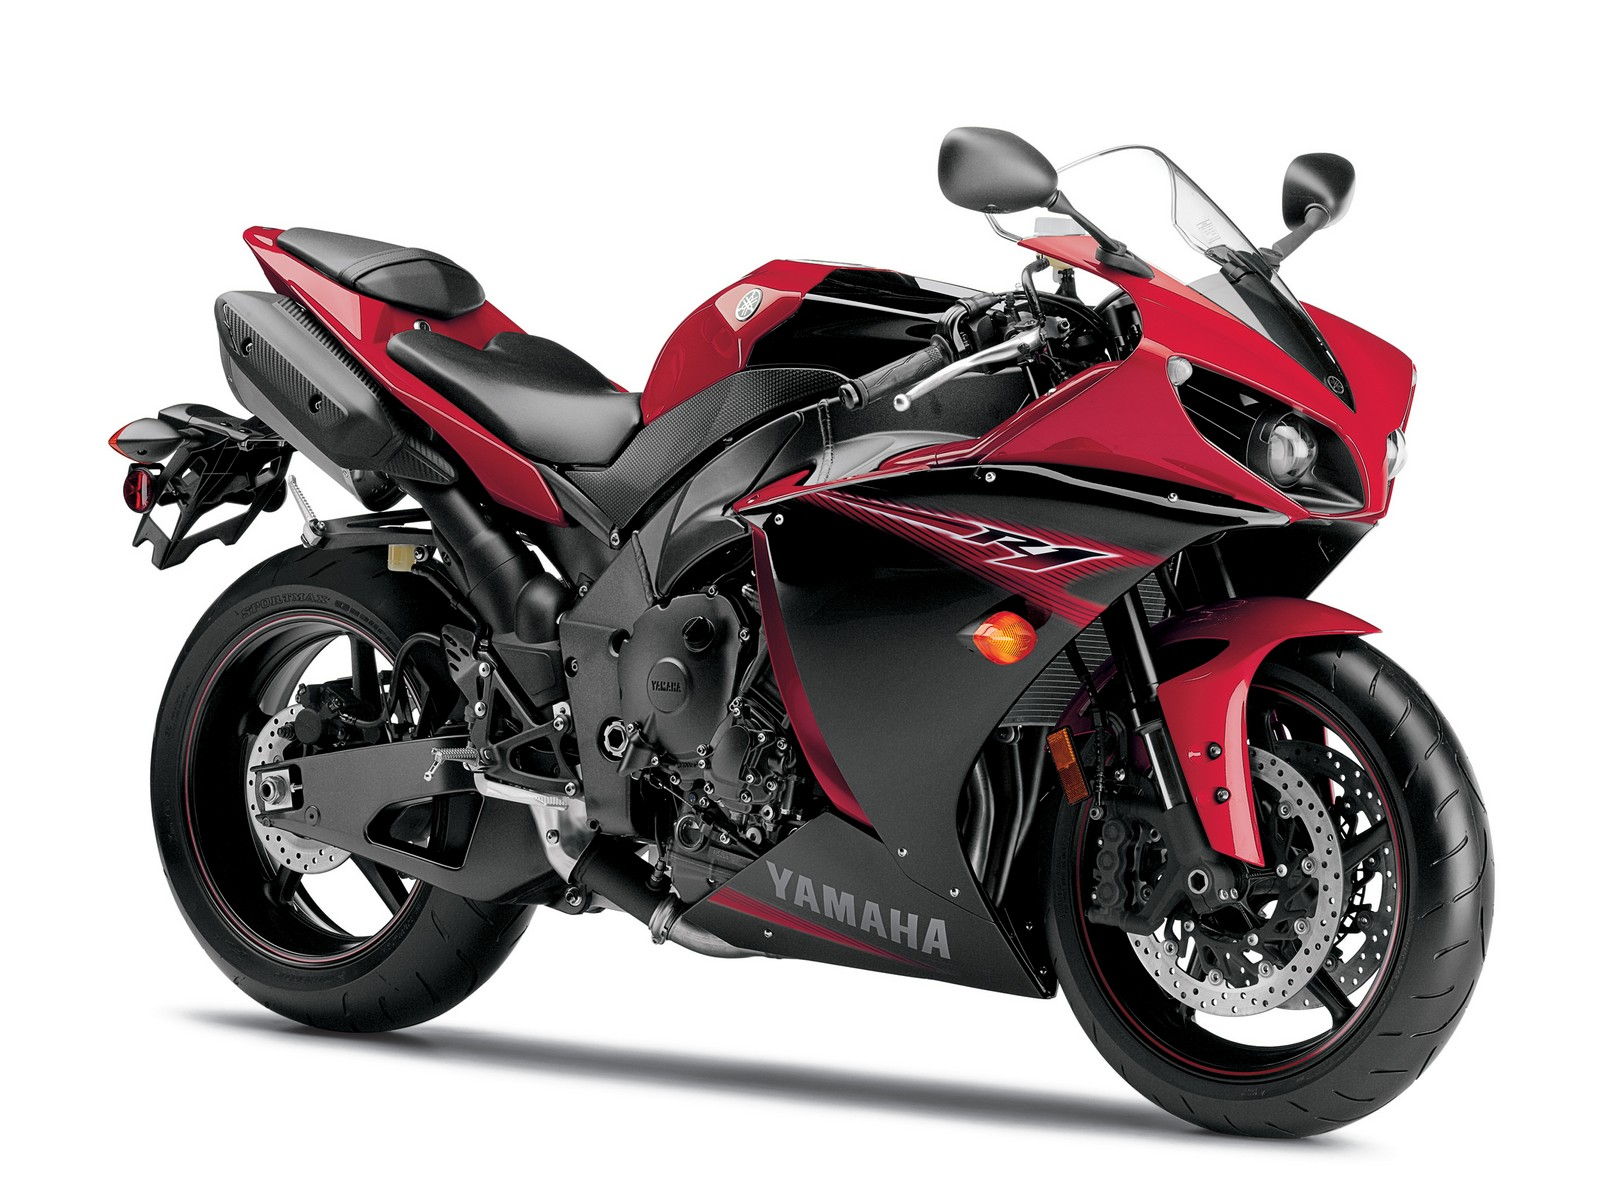 2013 yamaha yzf r1 review top speed for Yamaha r1 top speed